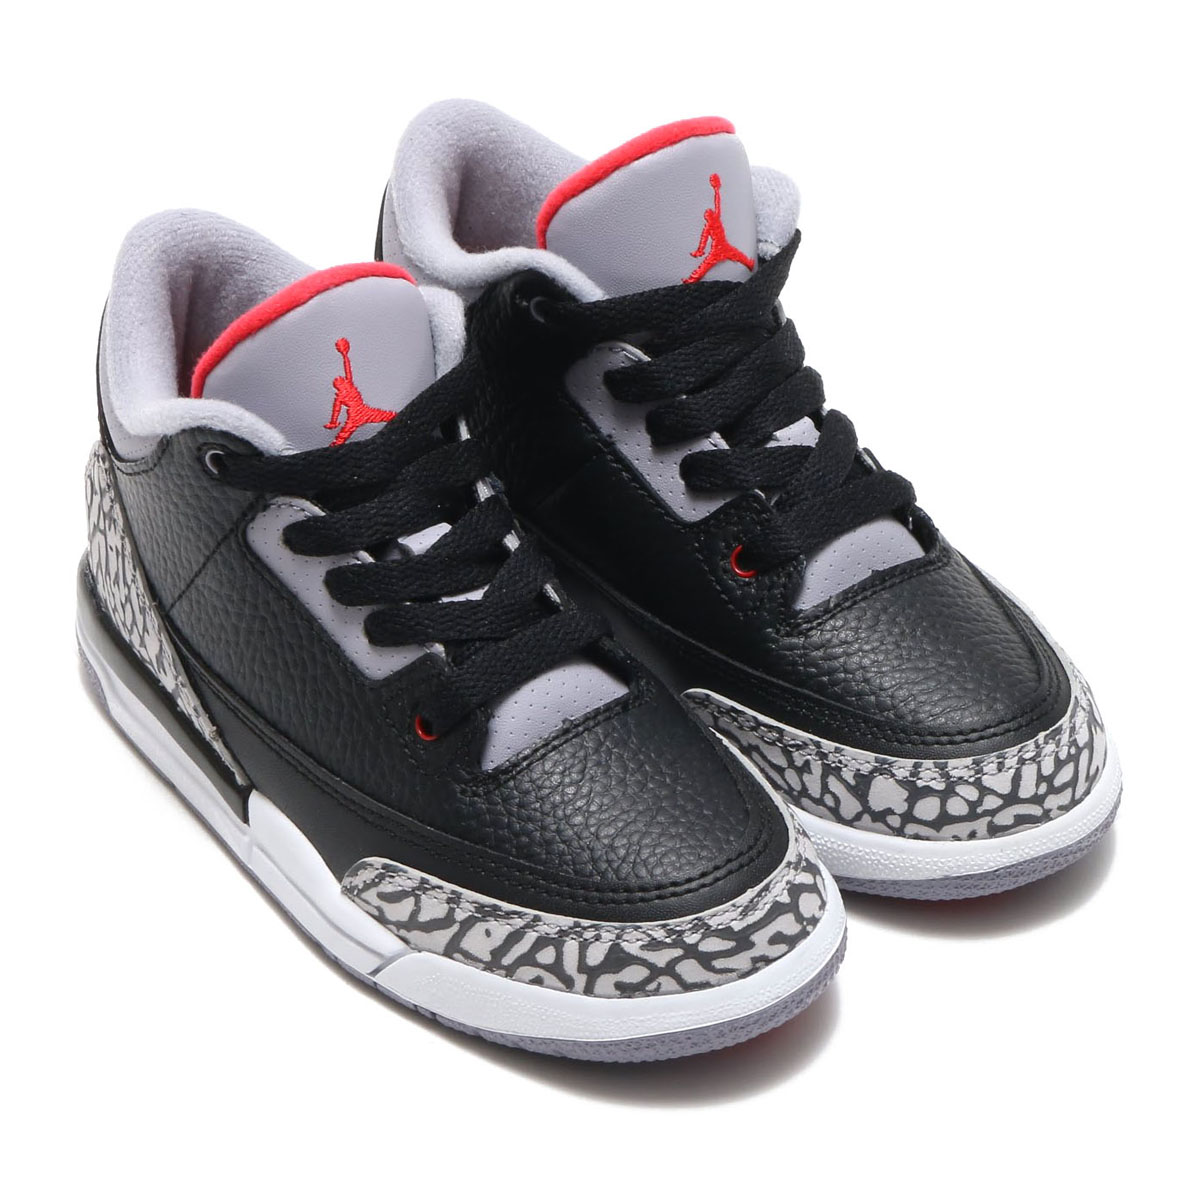 8bc19ef189c ☆Super SALE period-limited point 10 times! It is ☆ NIKE JORDAN 3 ...